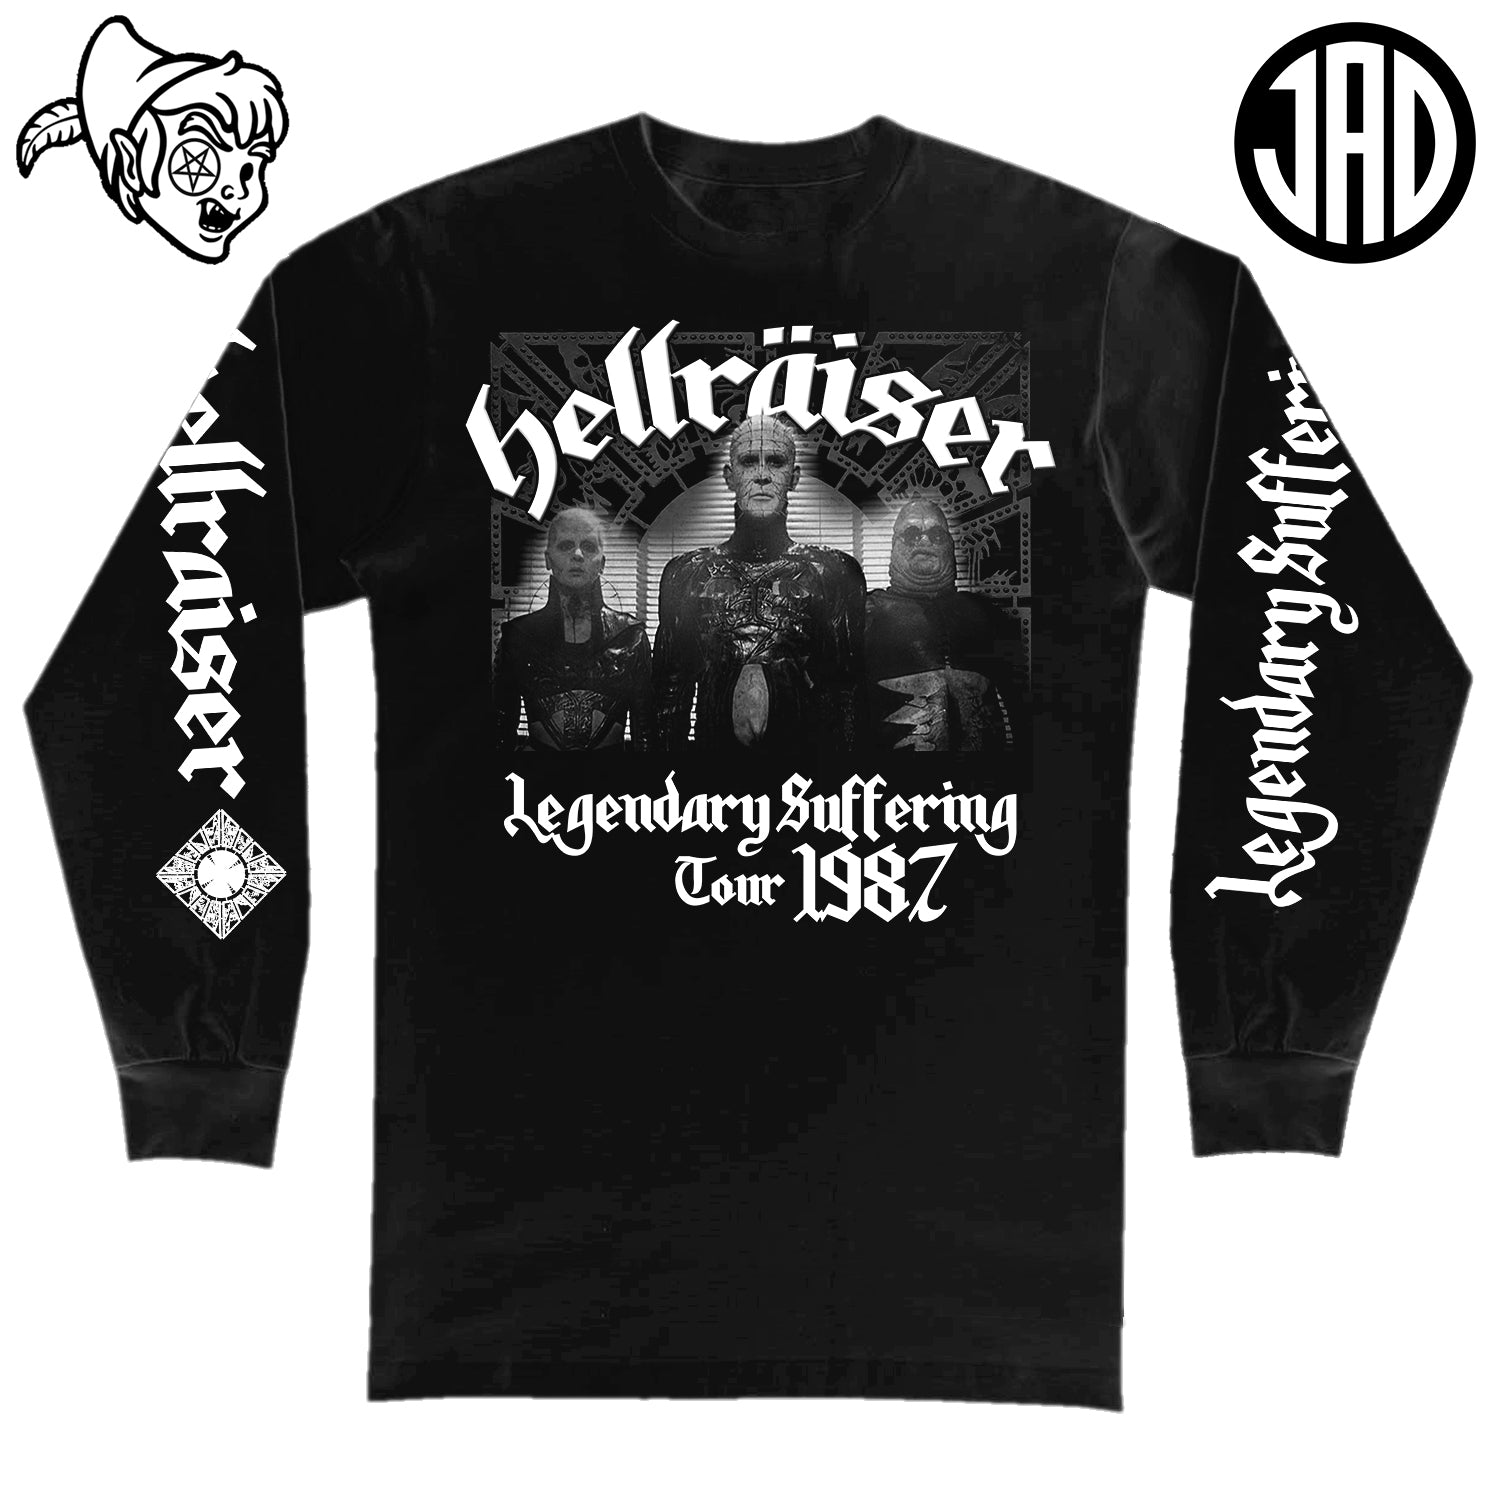 Legendary Suffering Tour 1987 - Men's (Unisex) Long Sleeve Tee